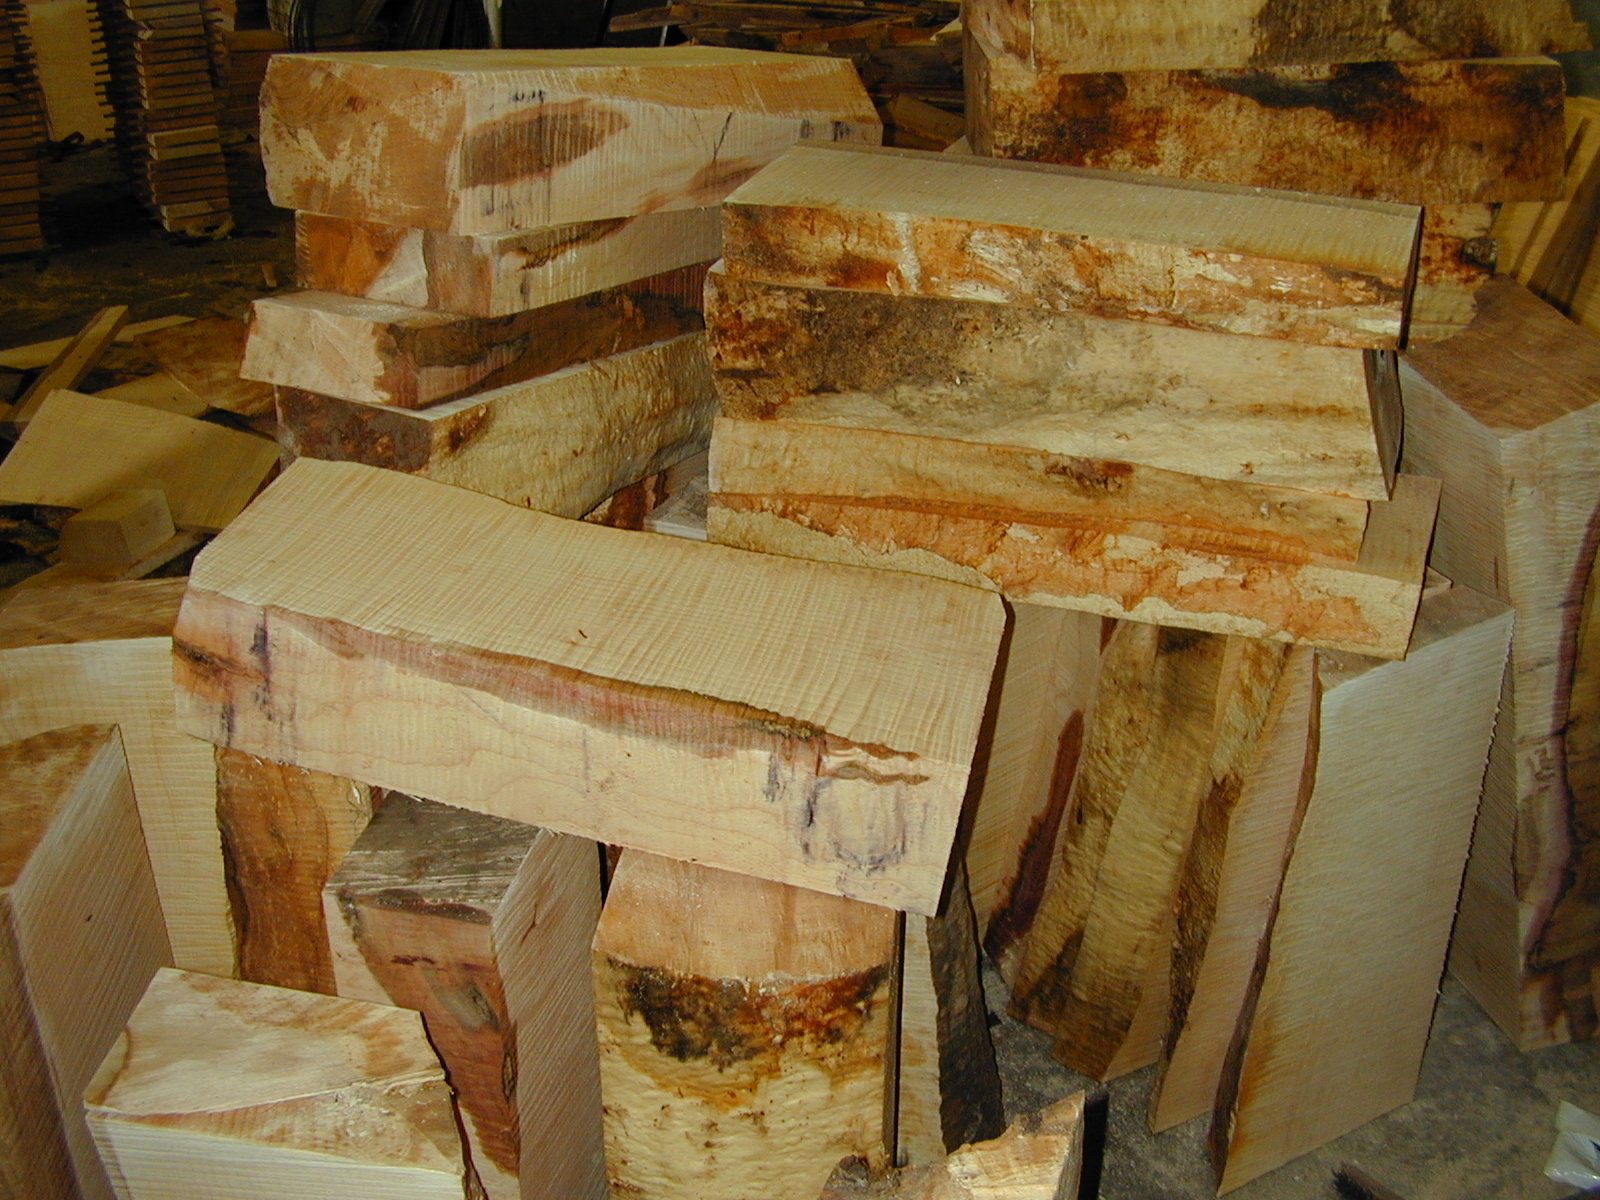 Green (still wet) curly maple billets